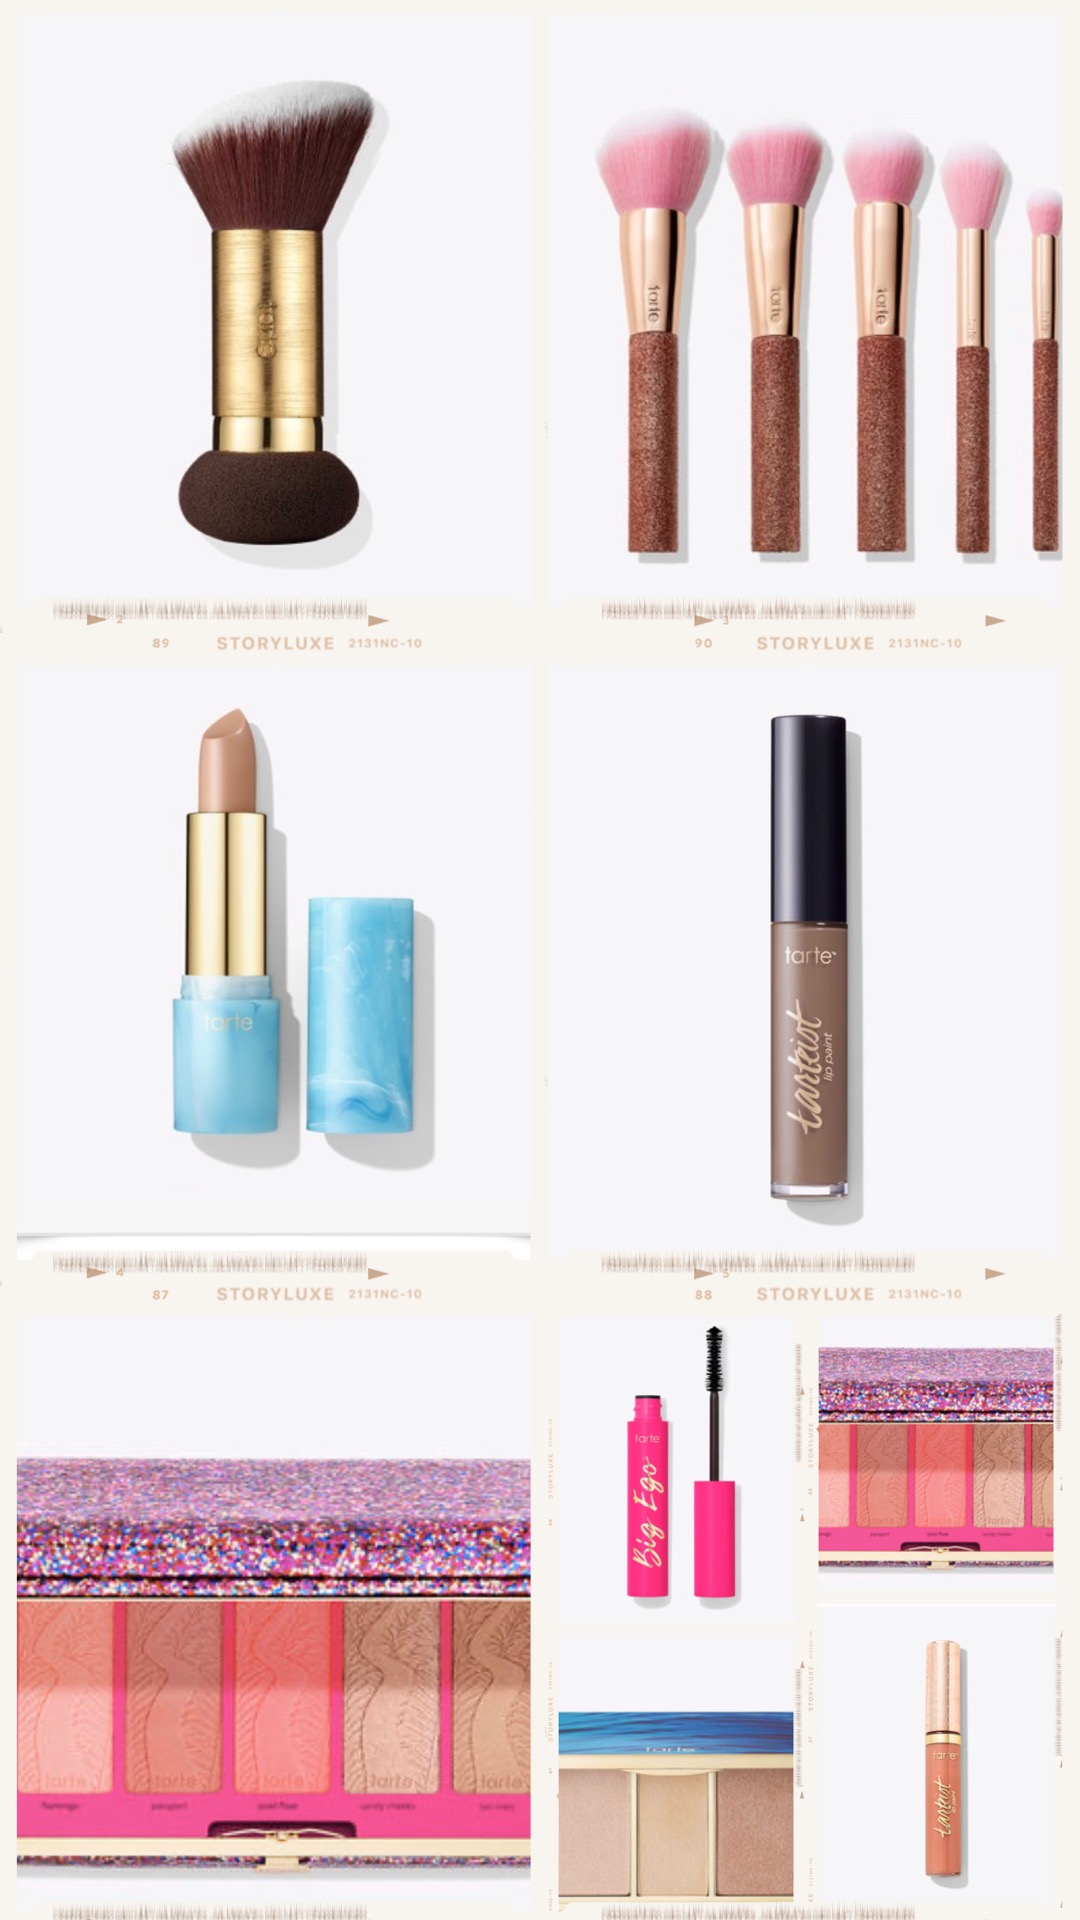 <center>TOP VEGAN BEAUTY UP TO 50% OFF SALE- TARTE</center>